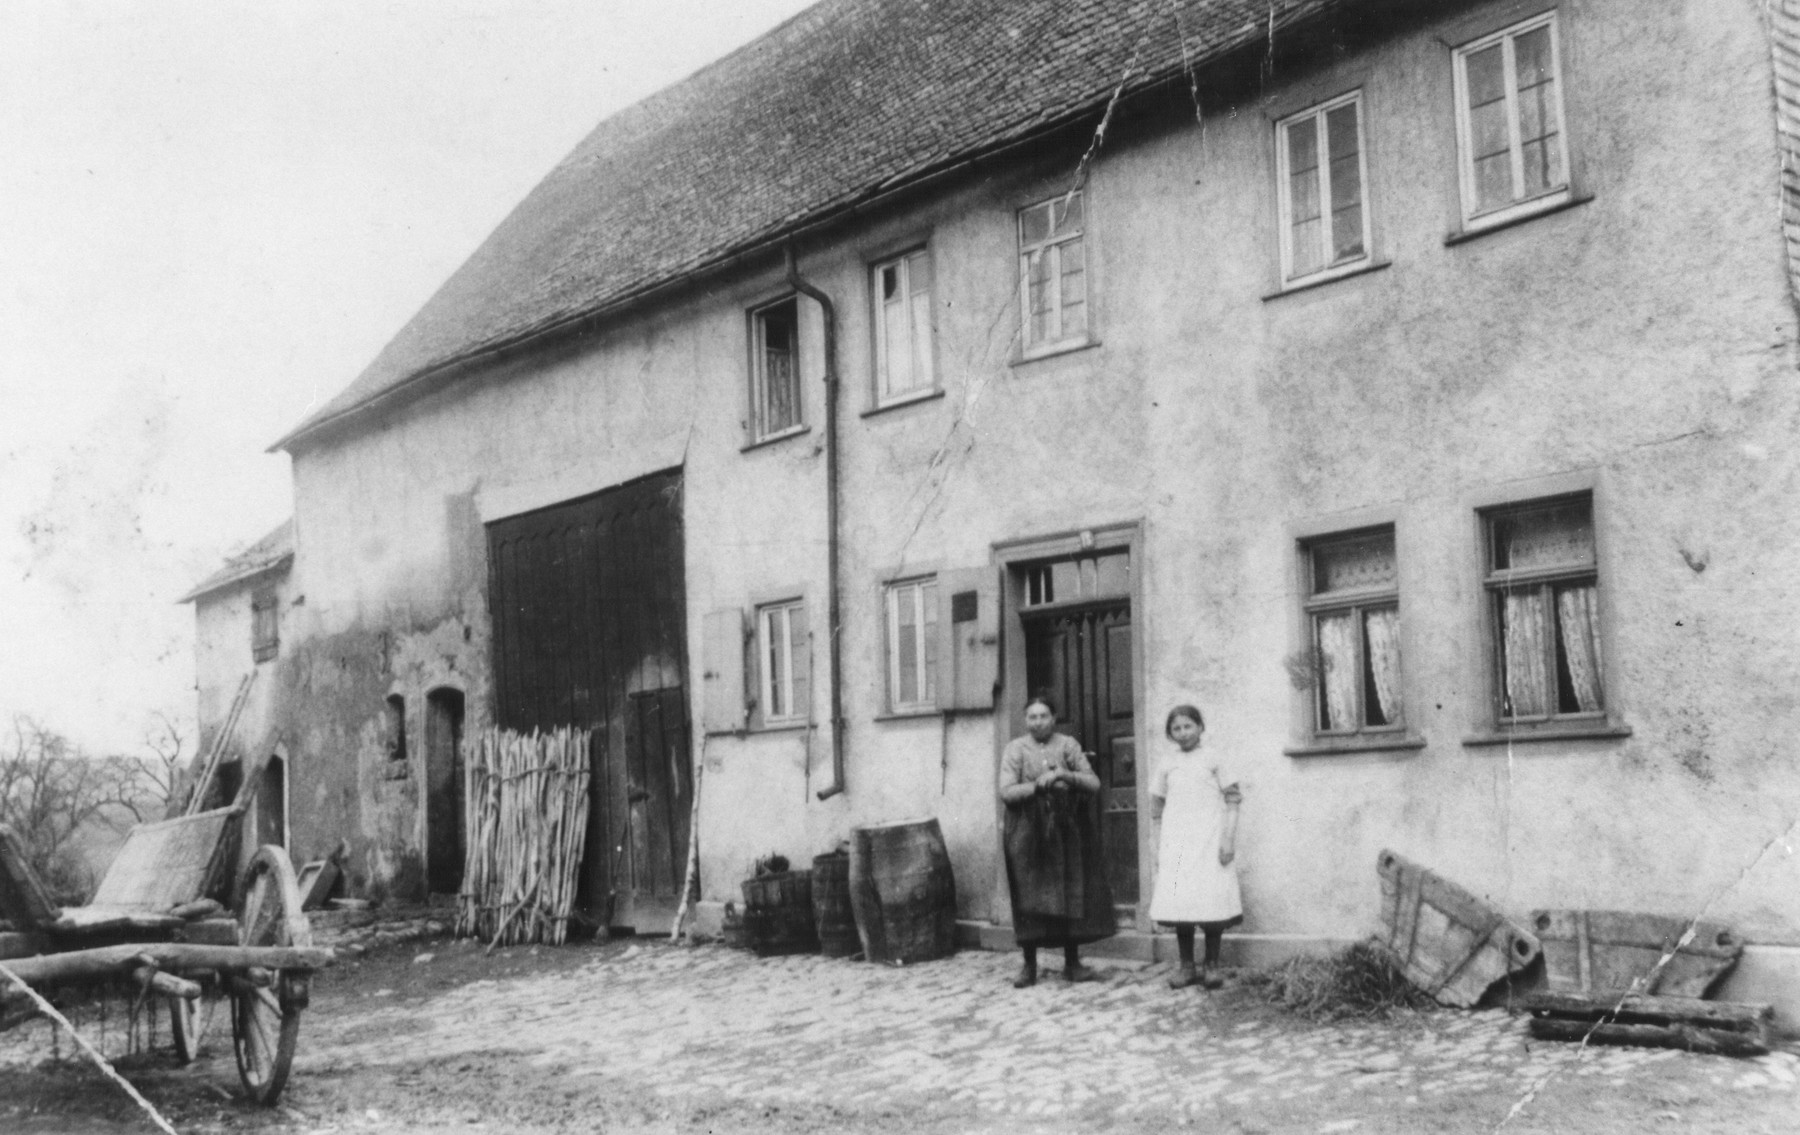 The Gerson Family farm on Roemerstrasse 39 in Perscheid, a small town near Oberwesel.